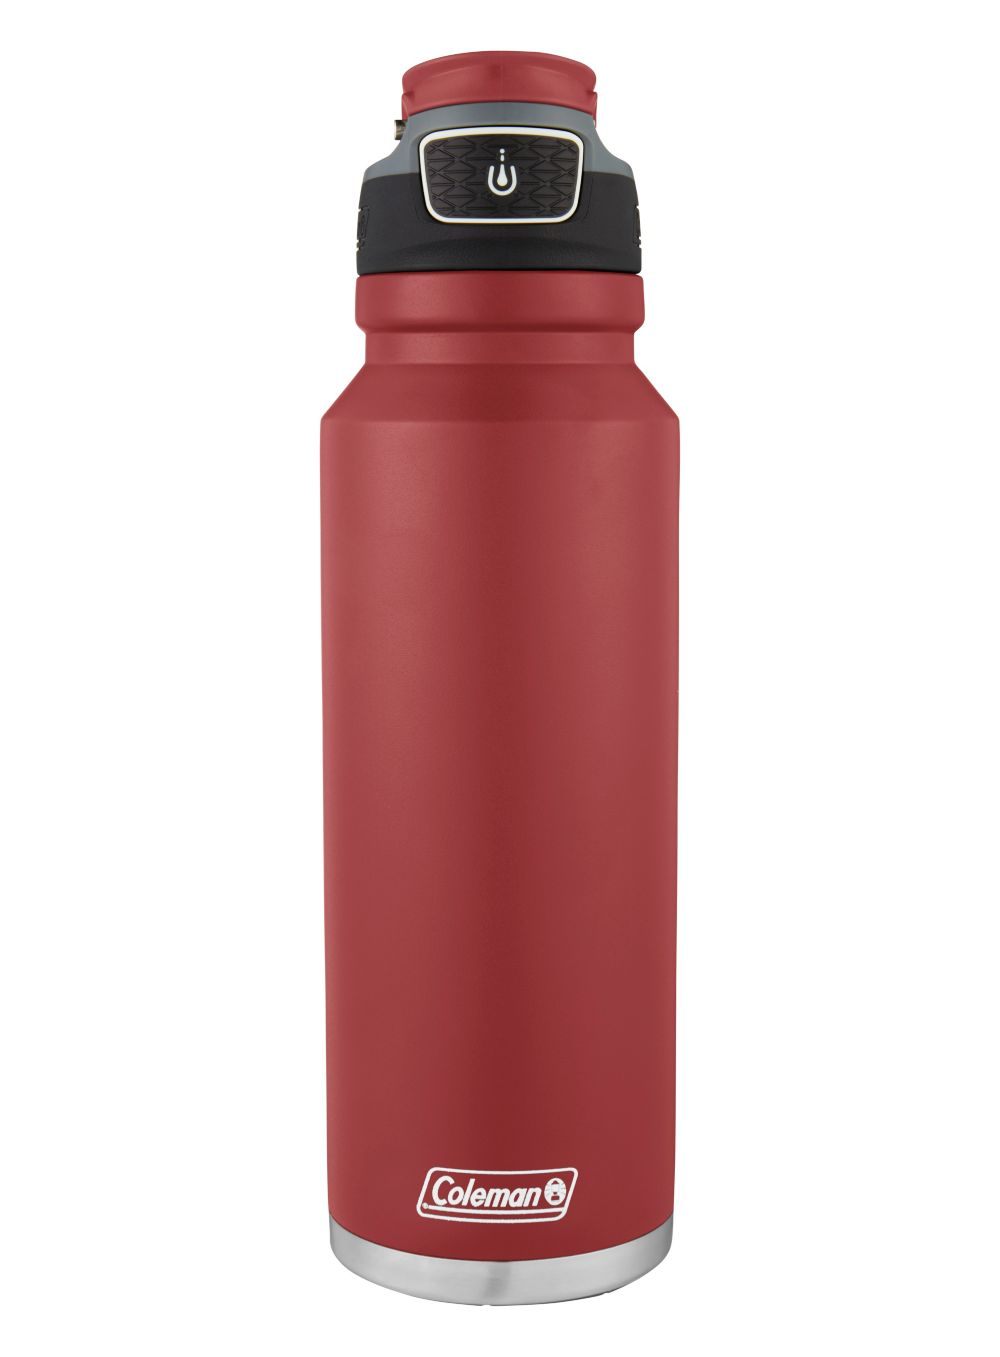 FreeFlow Stainless Steel AUTOSEAL Insulated Water Bottle 40oz